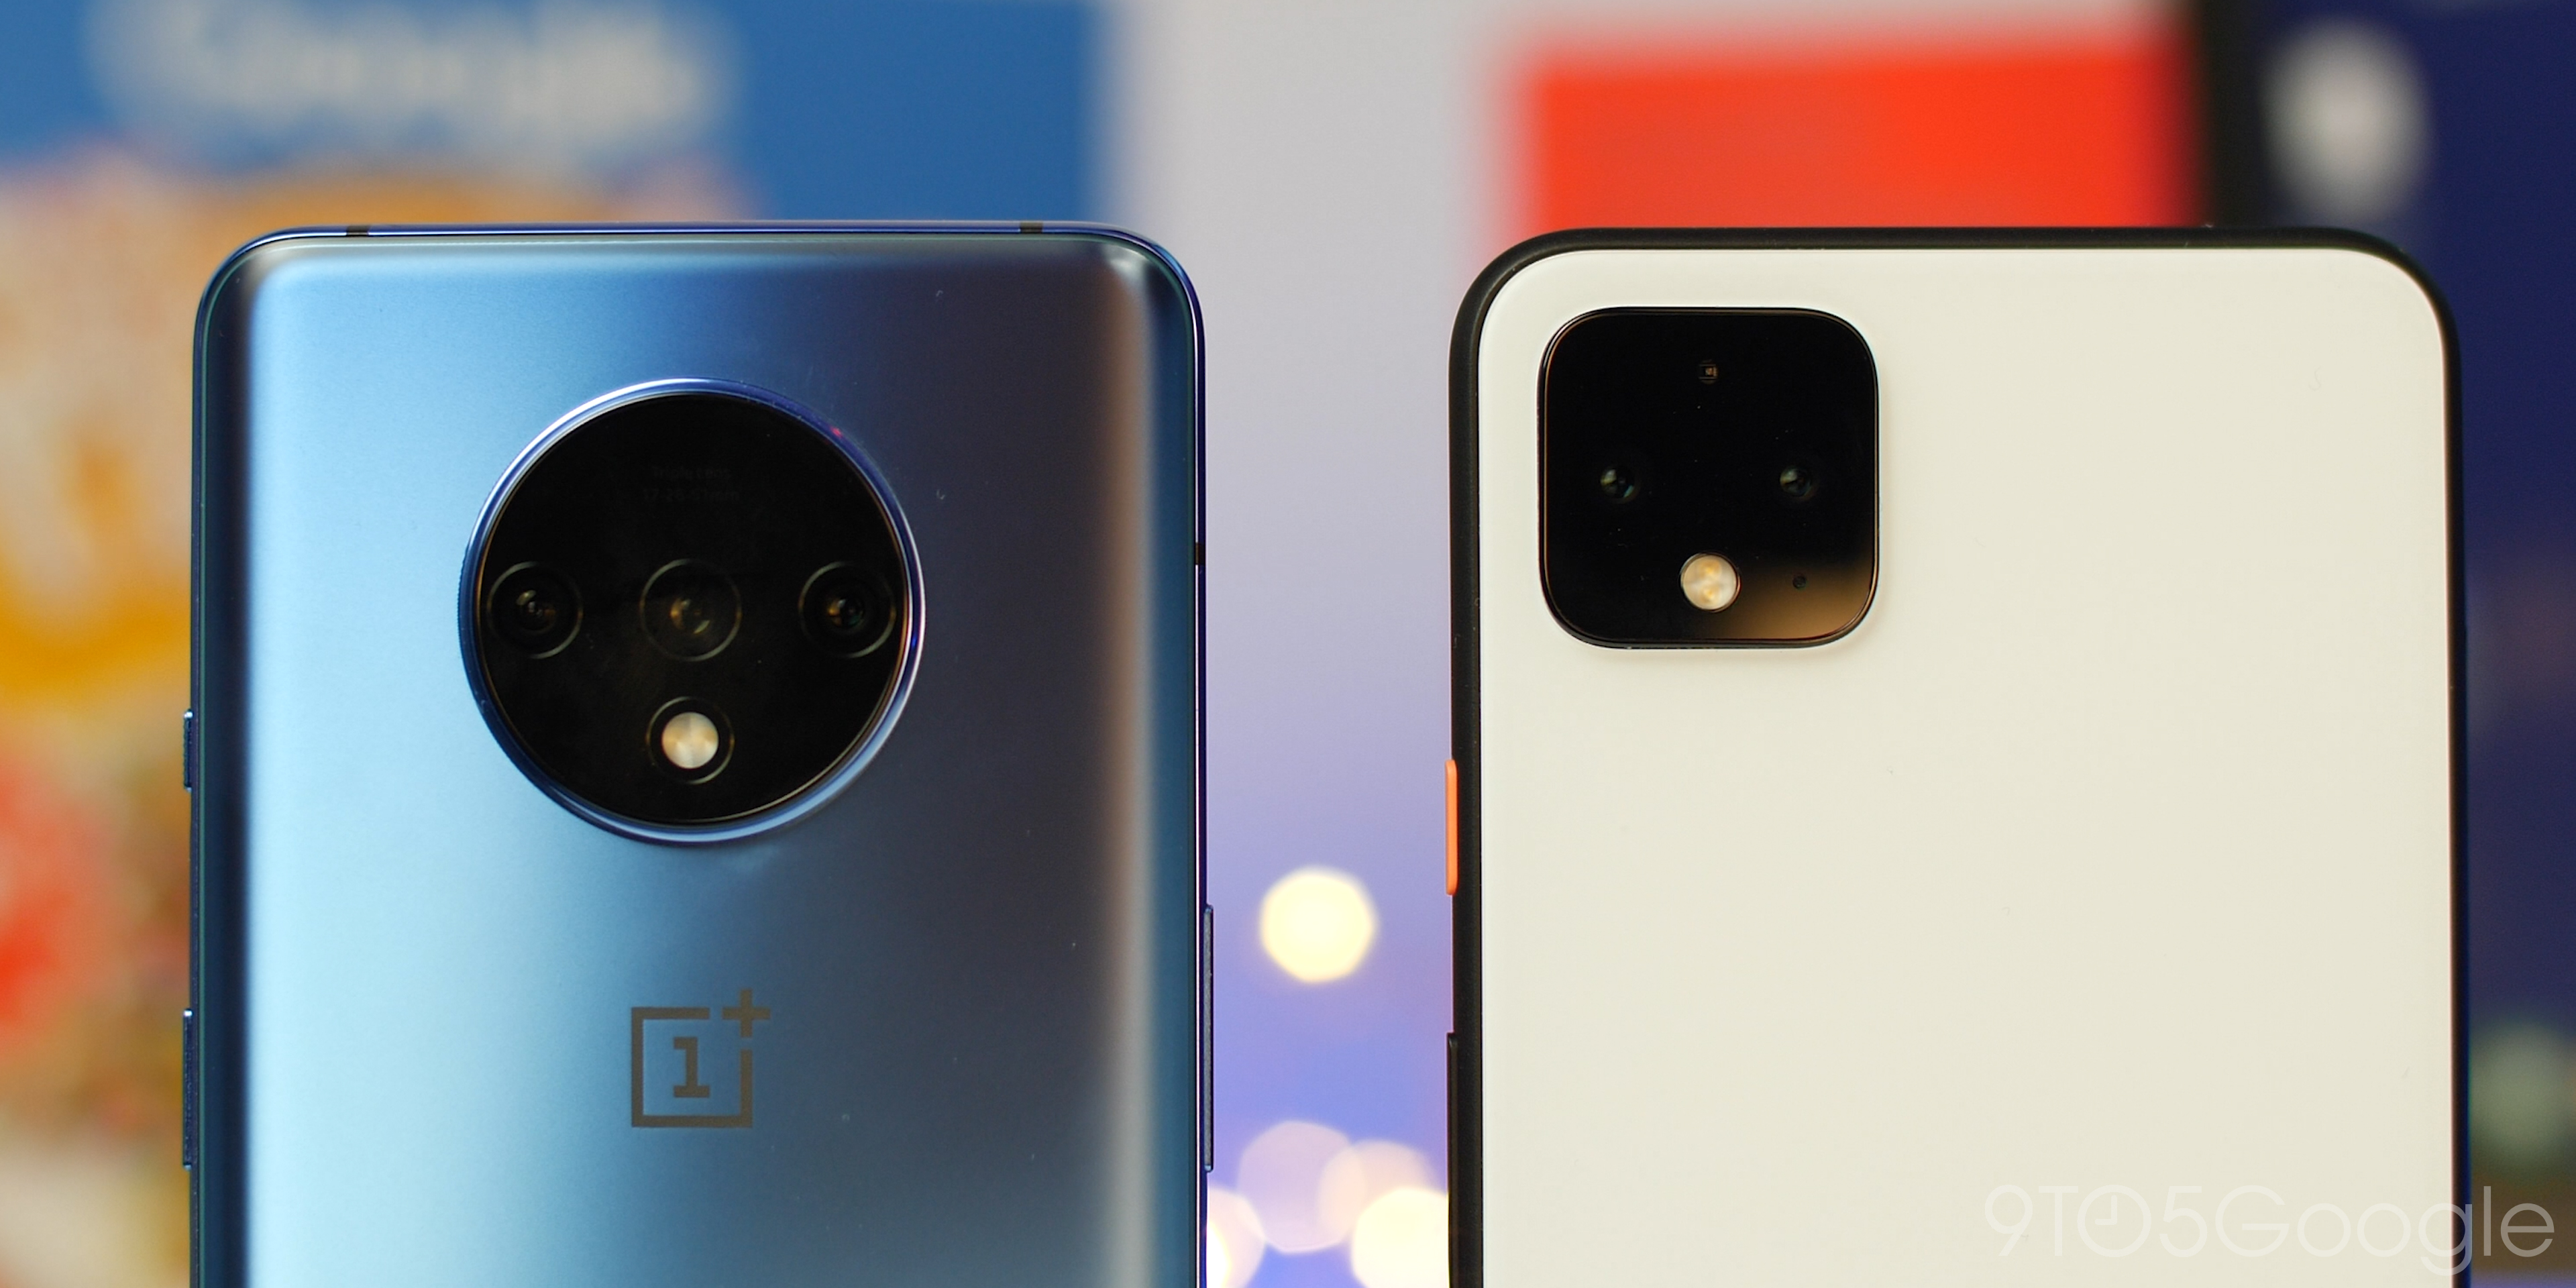 Netflix re-adds HDR support on Pixel 4 as OnePlus 7T, Oppo Find X2 join the list